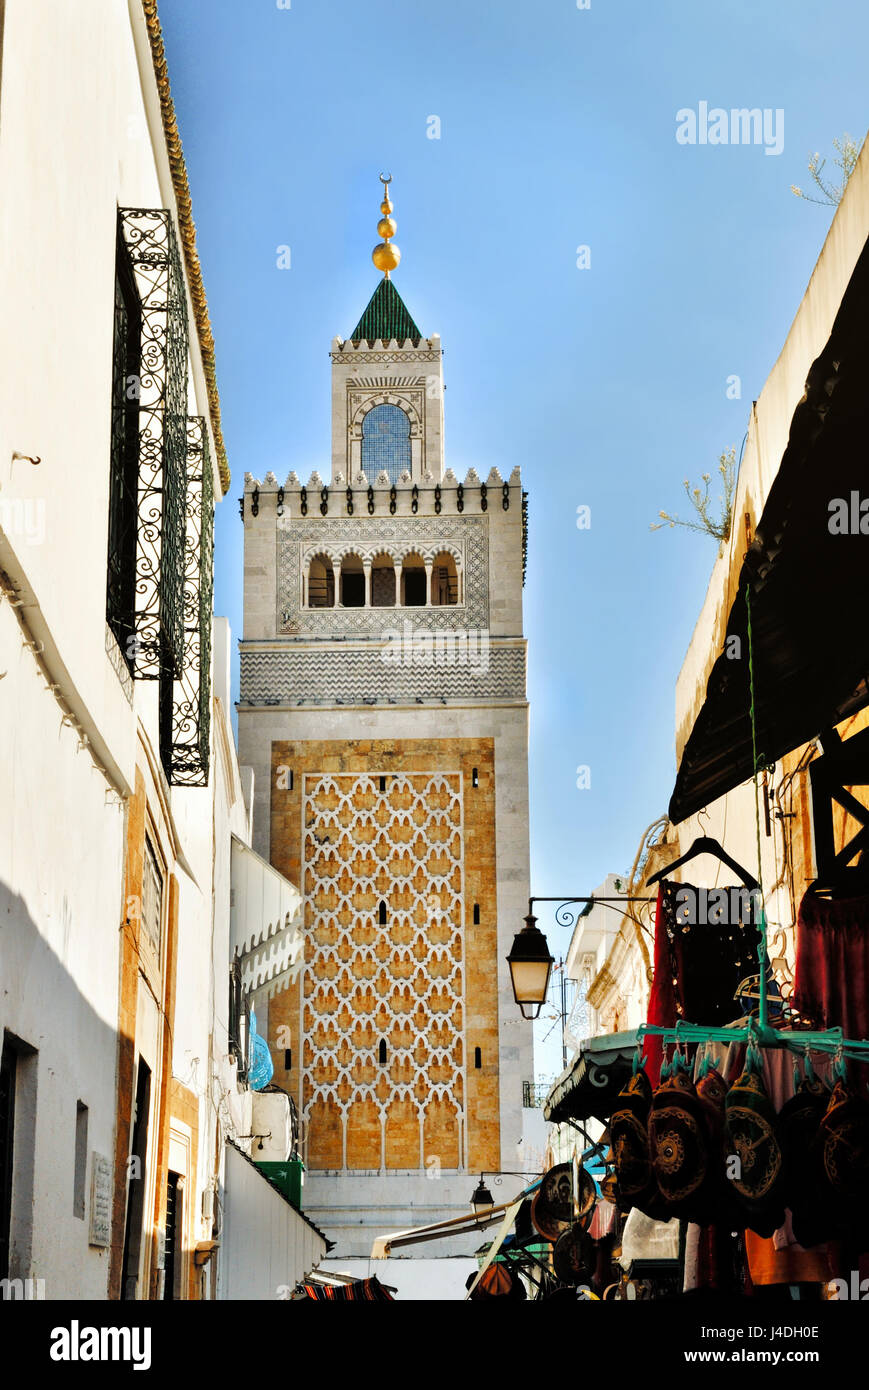 Mosque mosque Jamaa Ez Zitouna in the Medina of the city of Tunis, in Tunisia, Africa - Stock Image